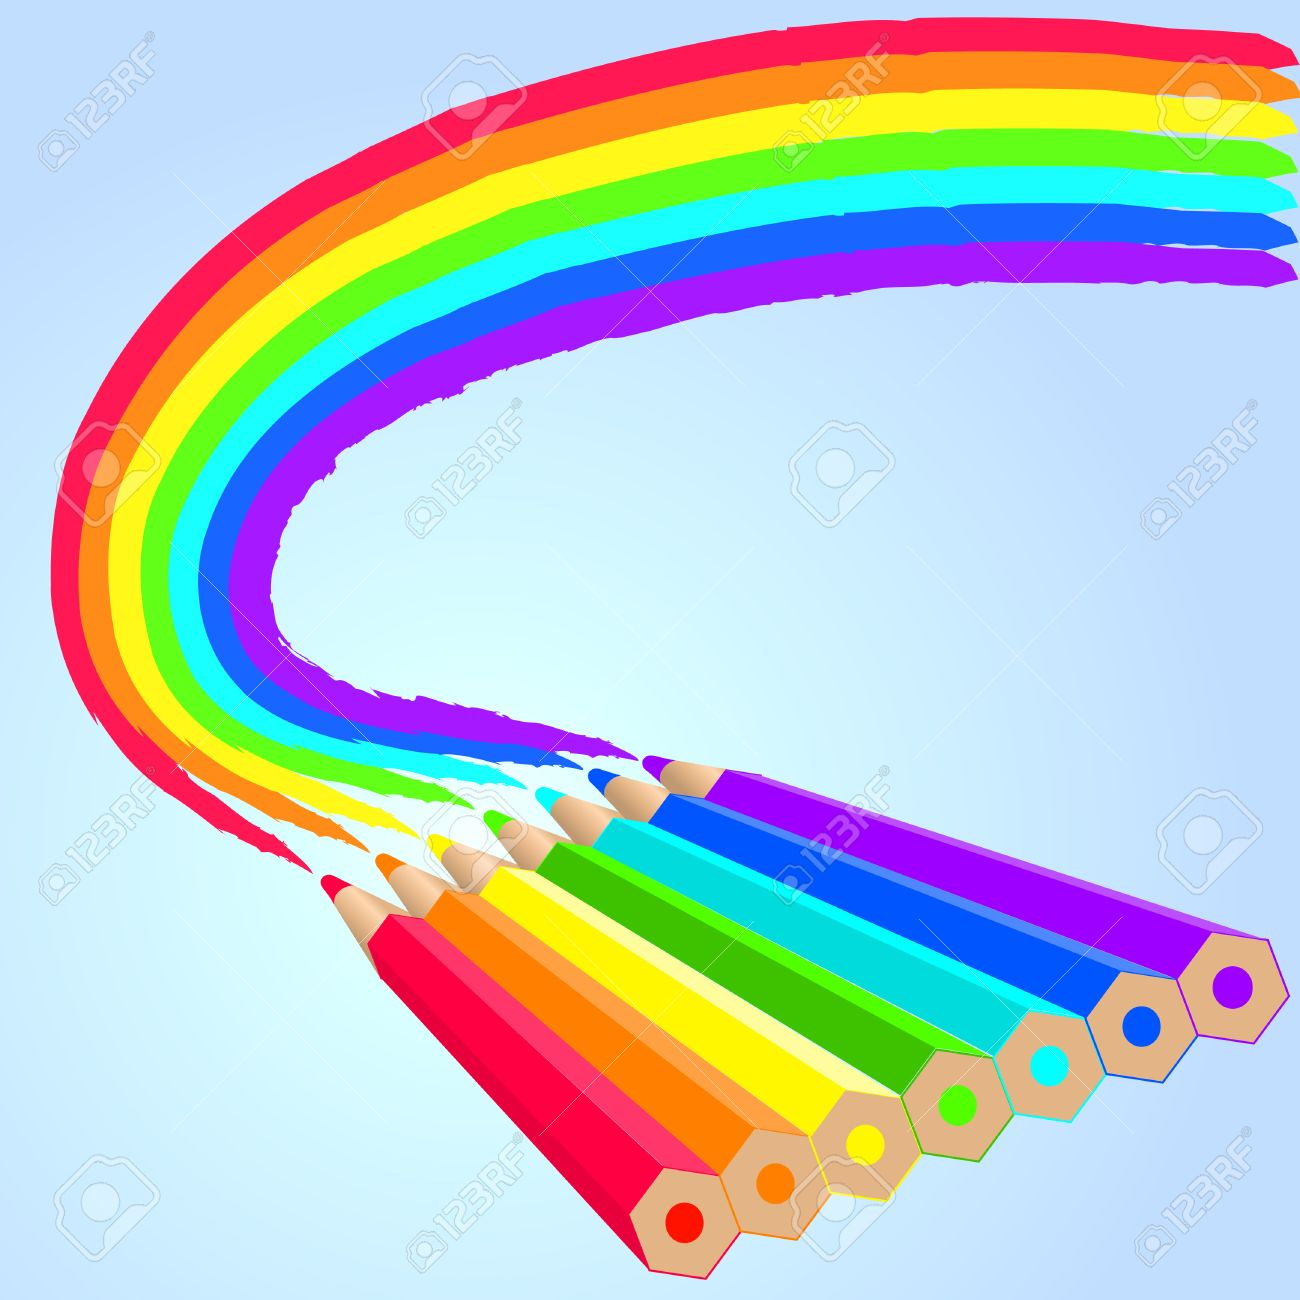 seven different color pencils draw the rainbow royalty free cliparts